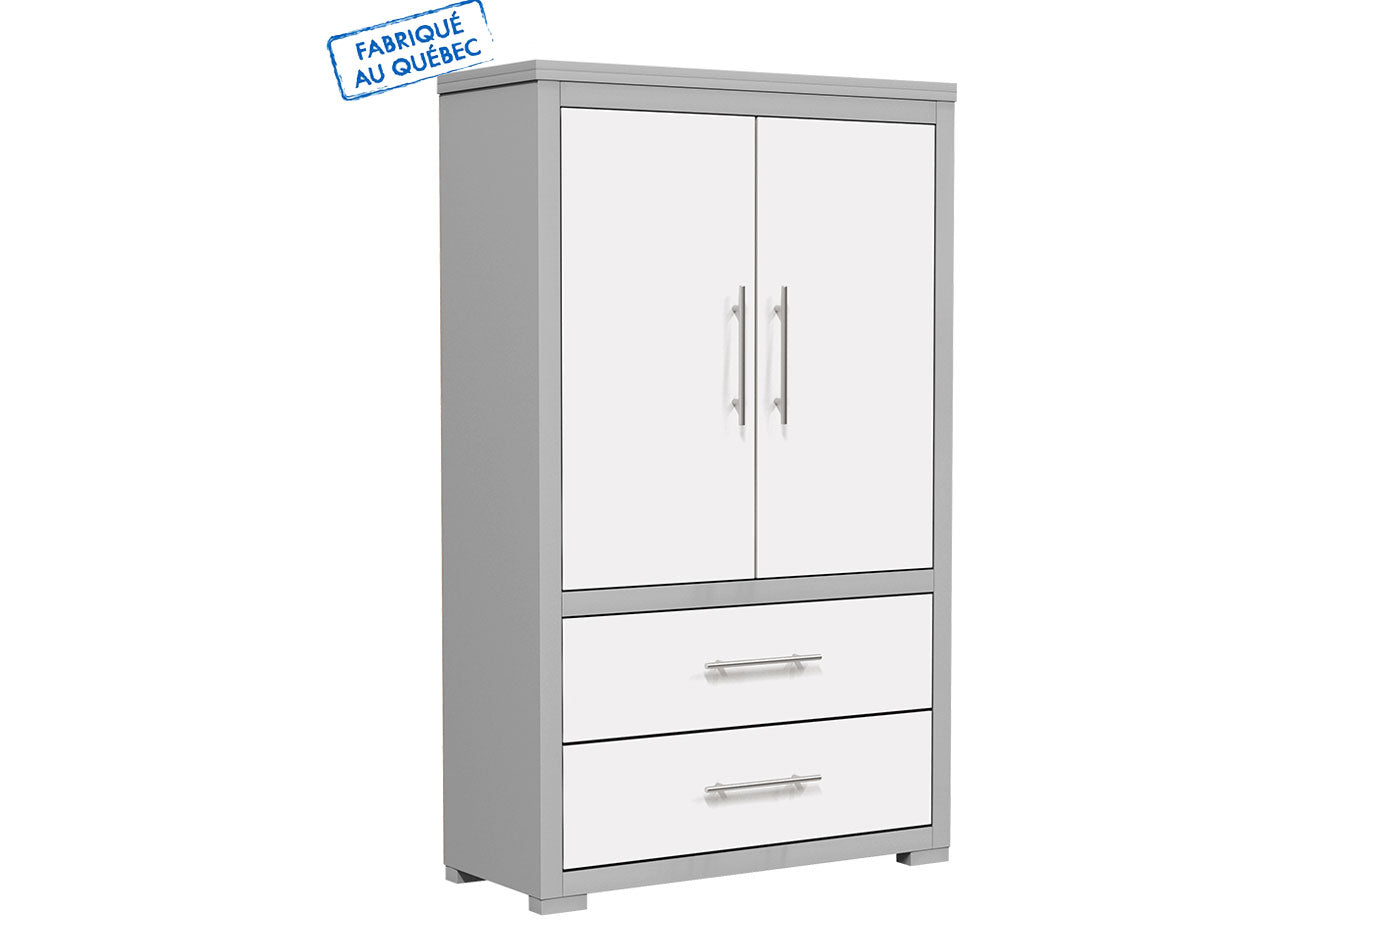 Barton wardrobe in wooden finish - Pale gray and white